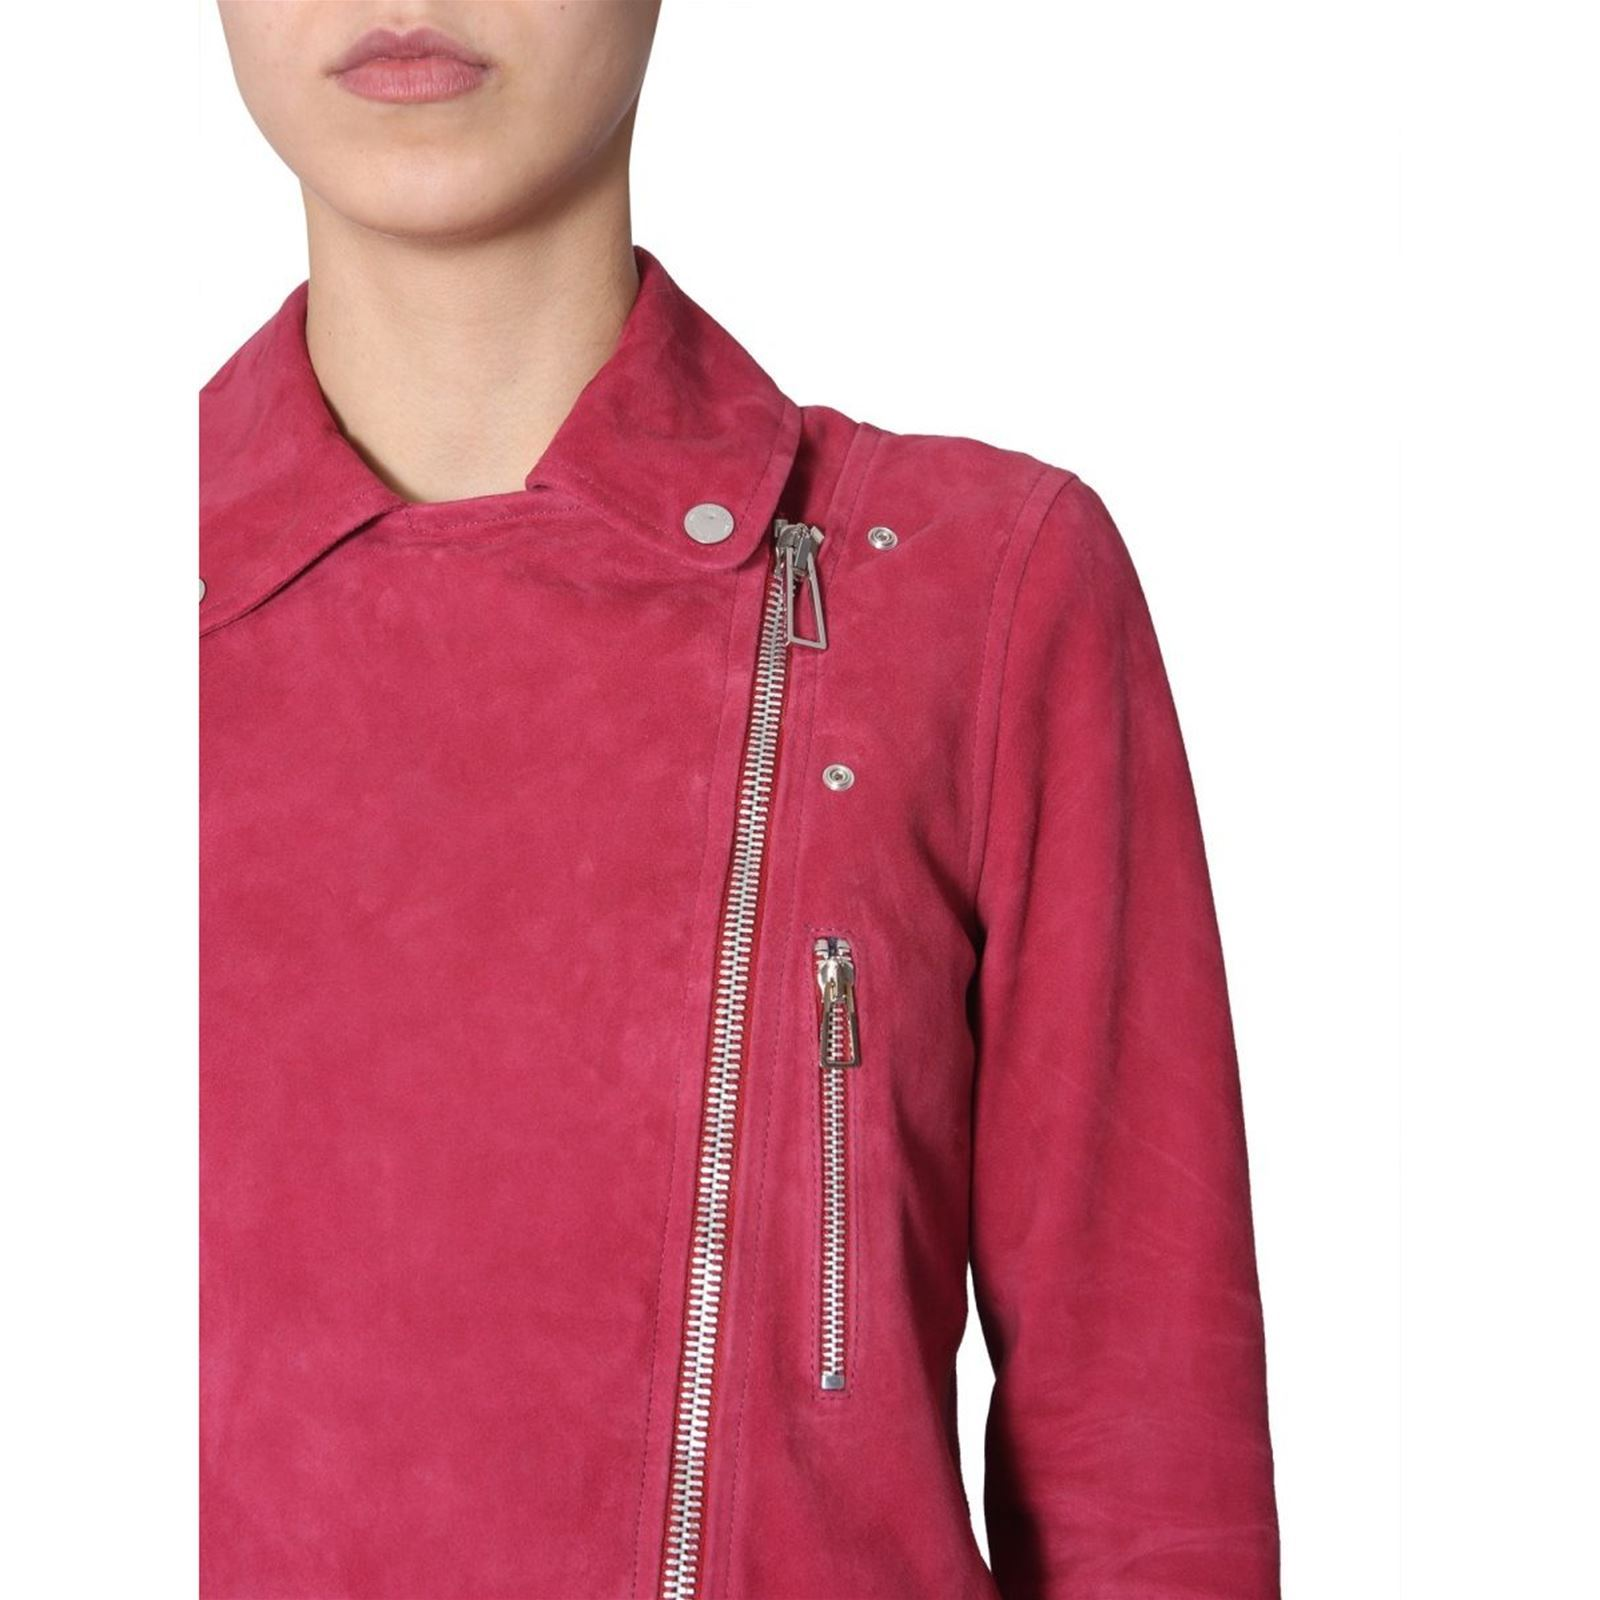 V By Ps Smith Femme Paul BlousonFuchsia bfY76yg